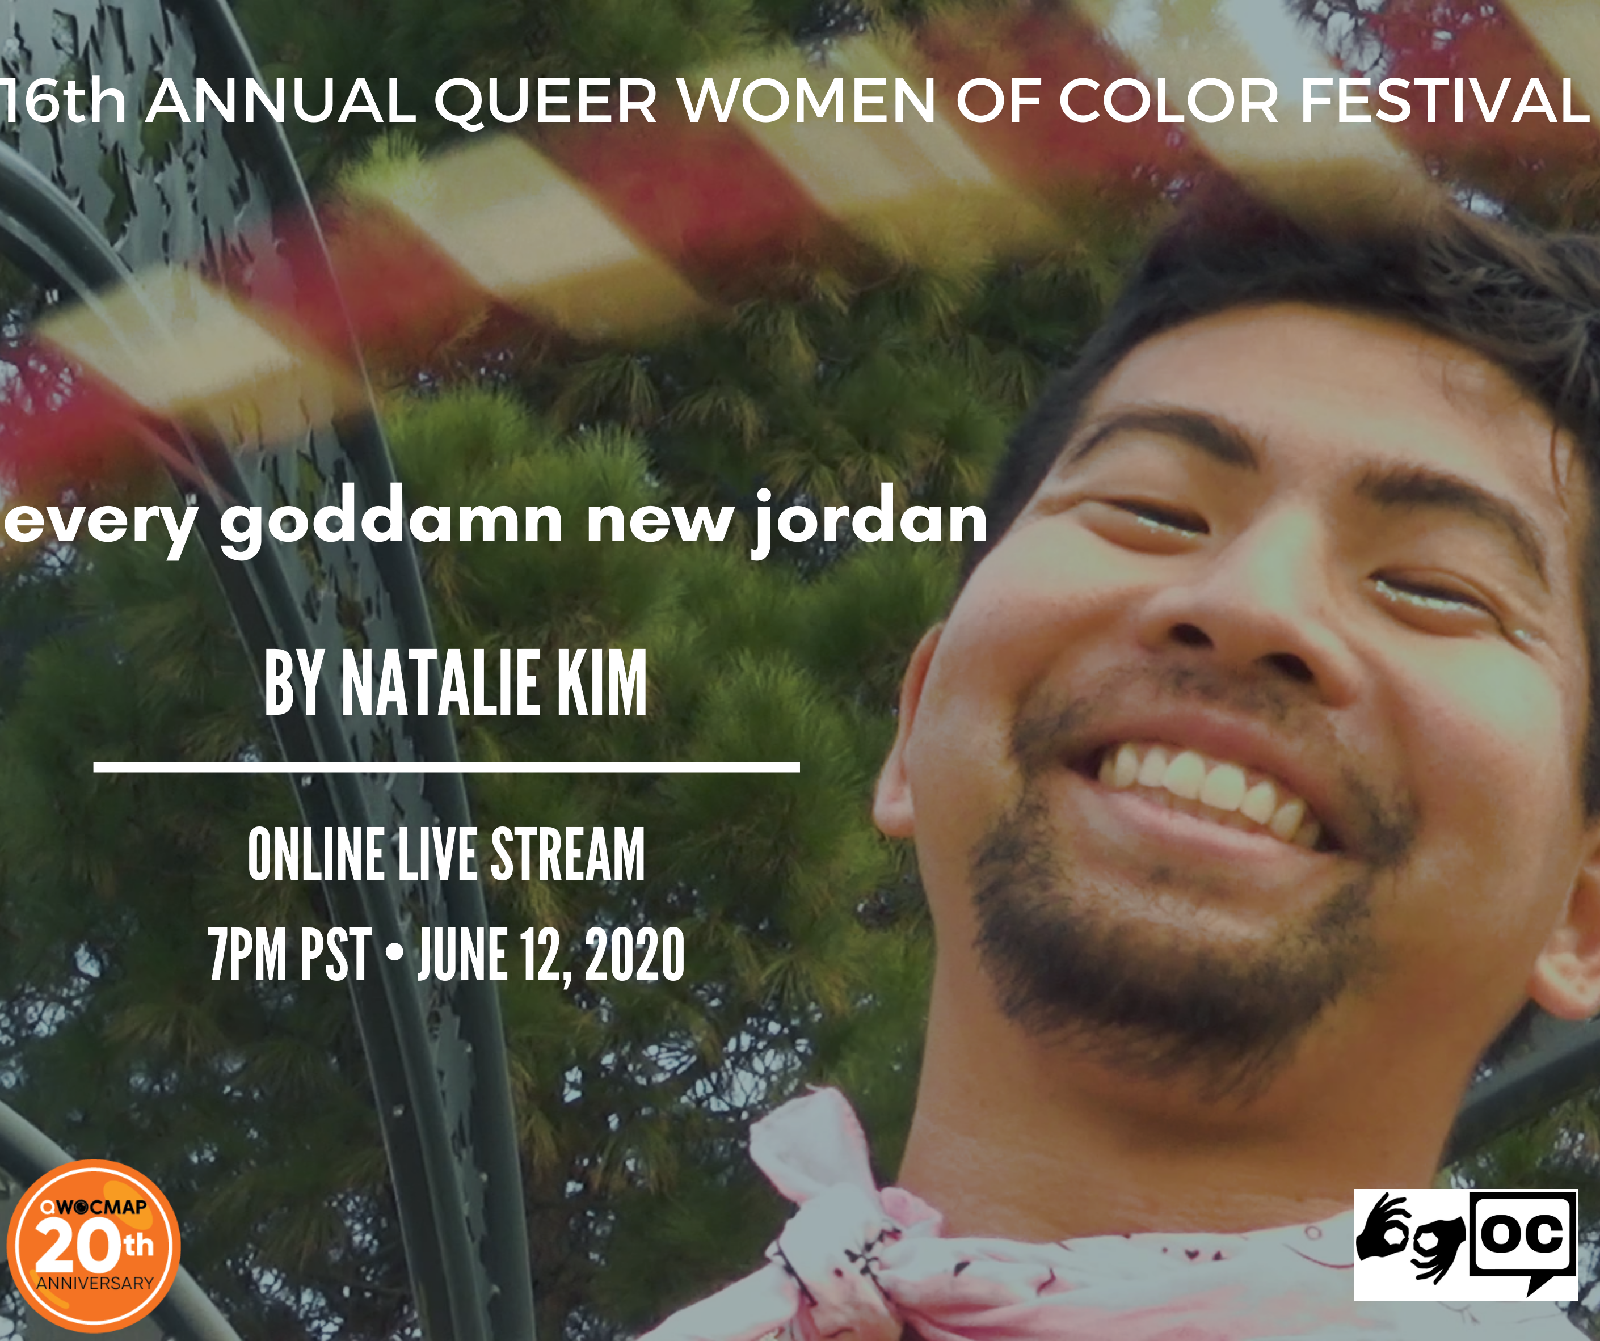 A closeup shot of a gay Japanese American man with medium brown skin, short beard and pink bandana, smiling at the camera. The top of the image reads 16th Annual Queer Women of Color Film Festival.Text below reads every goddamn jordan by Natalie Kim. The QWOCMAP logo is on the bottom left, the ASL and open captions logo are on the bottom right. Text below reads ONLINE LIVE STREAM 7PM PST JUNE 12, 2020.